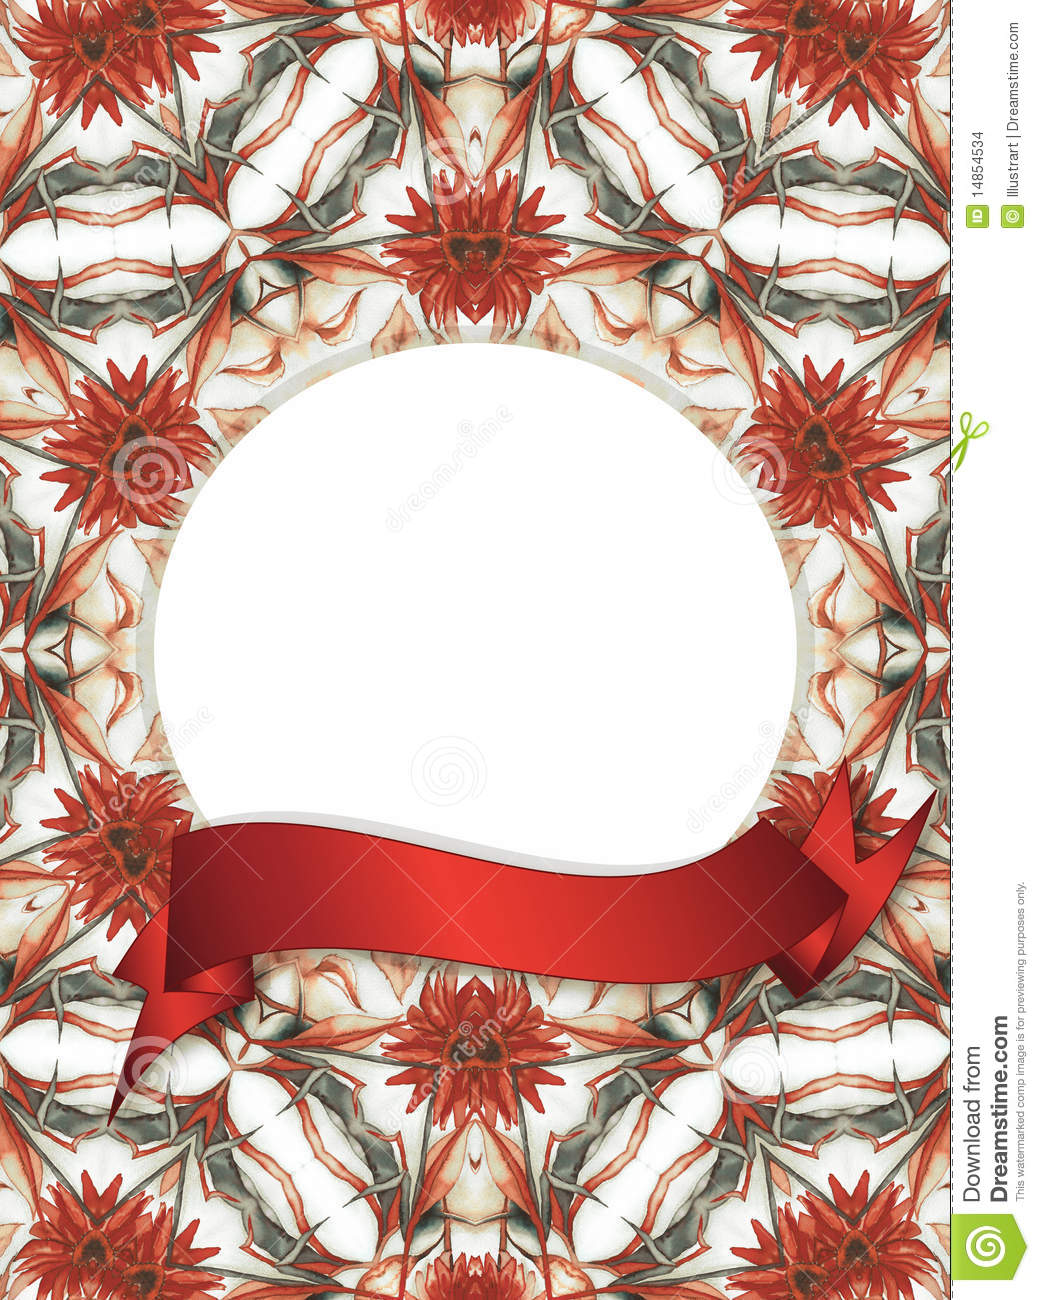 Floral frame with red banner